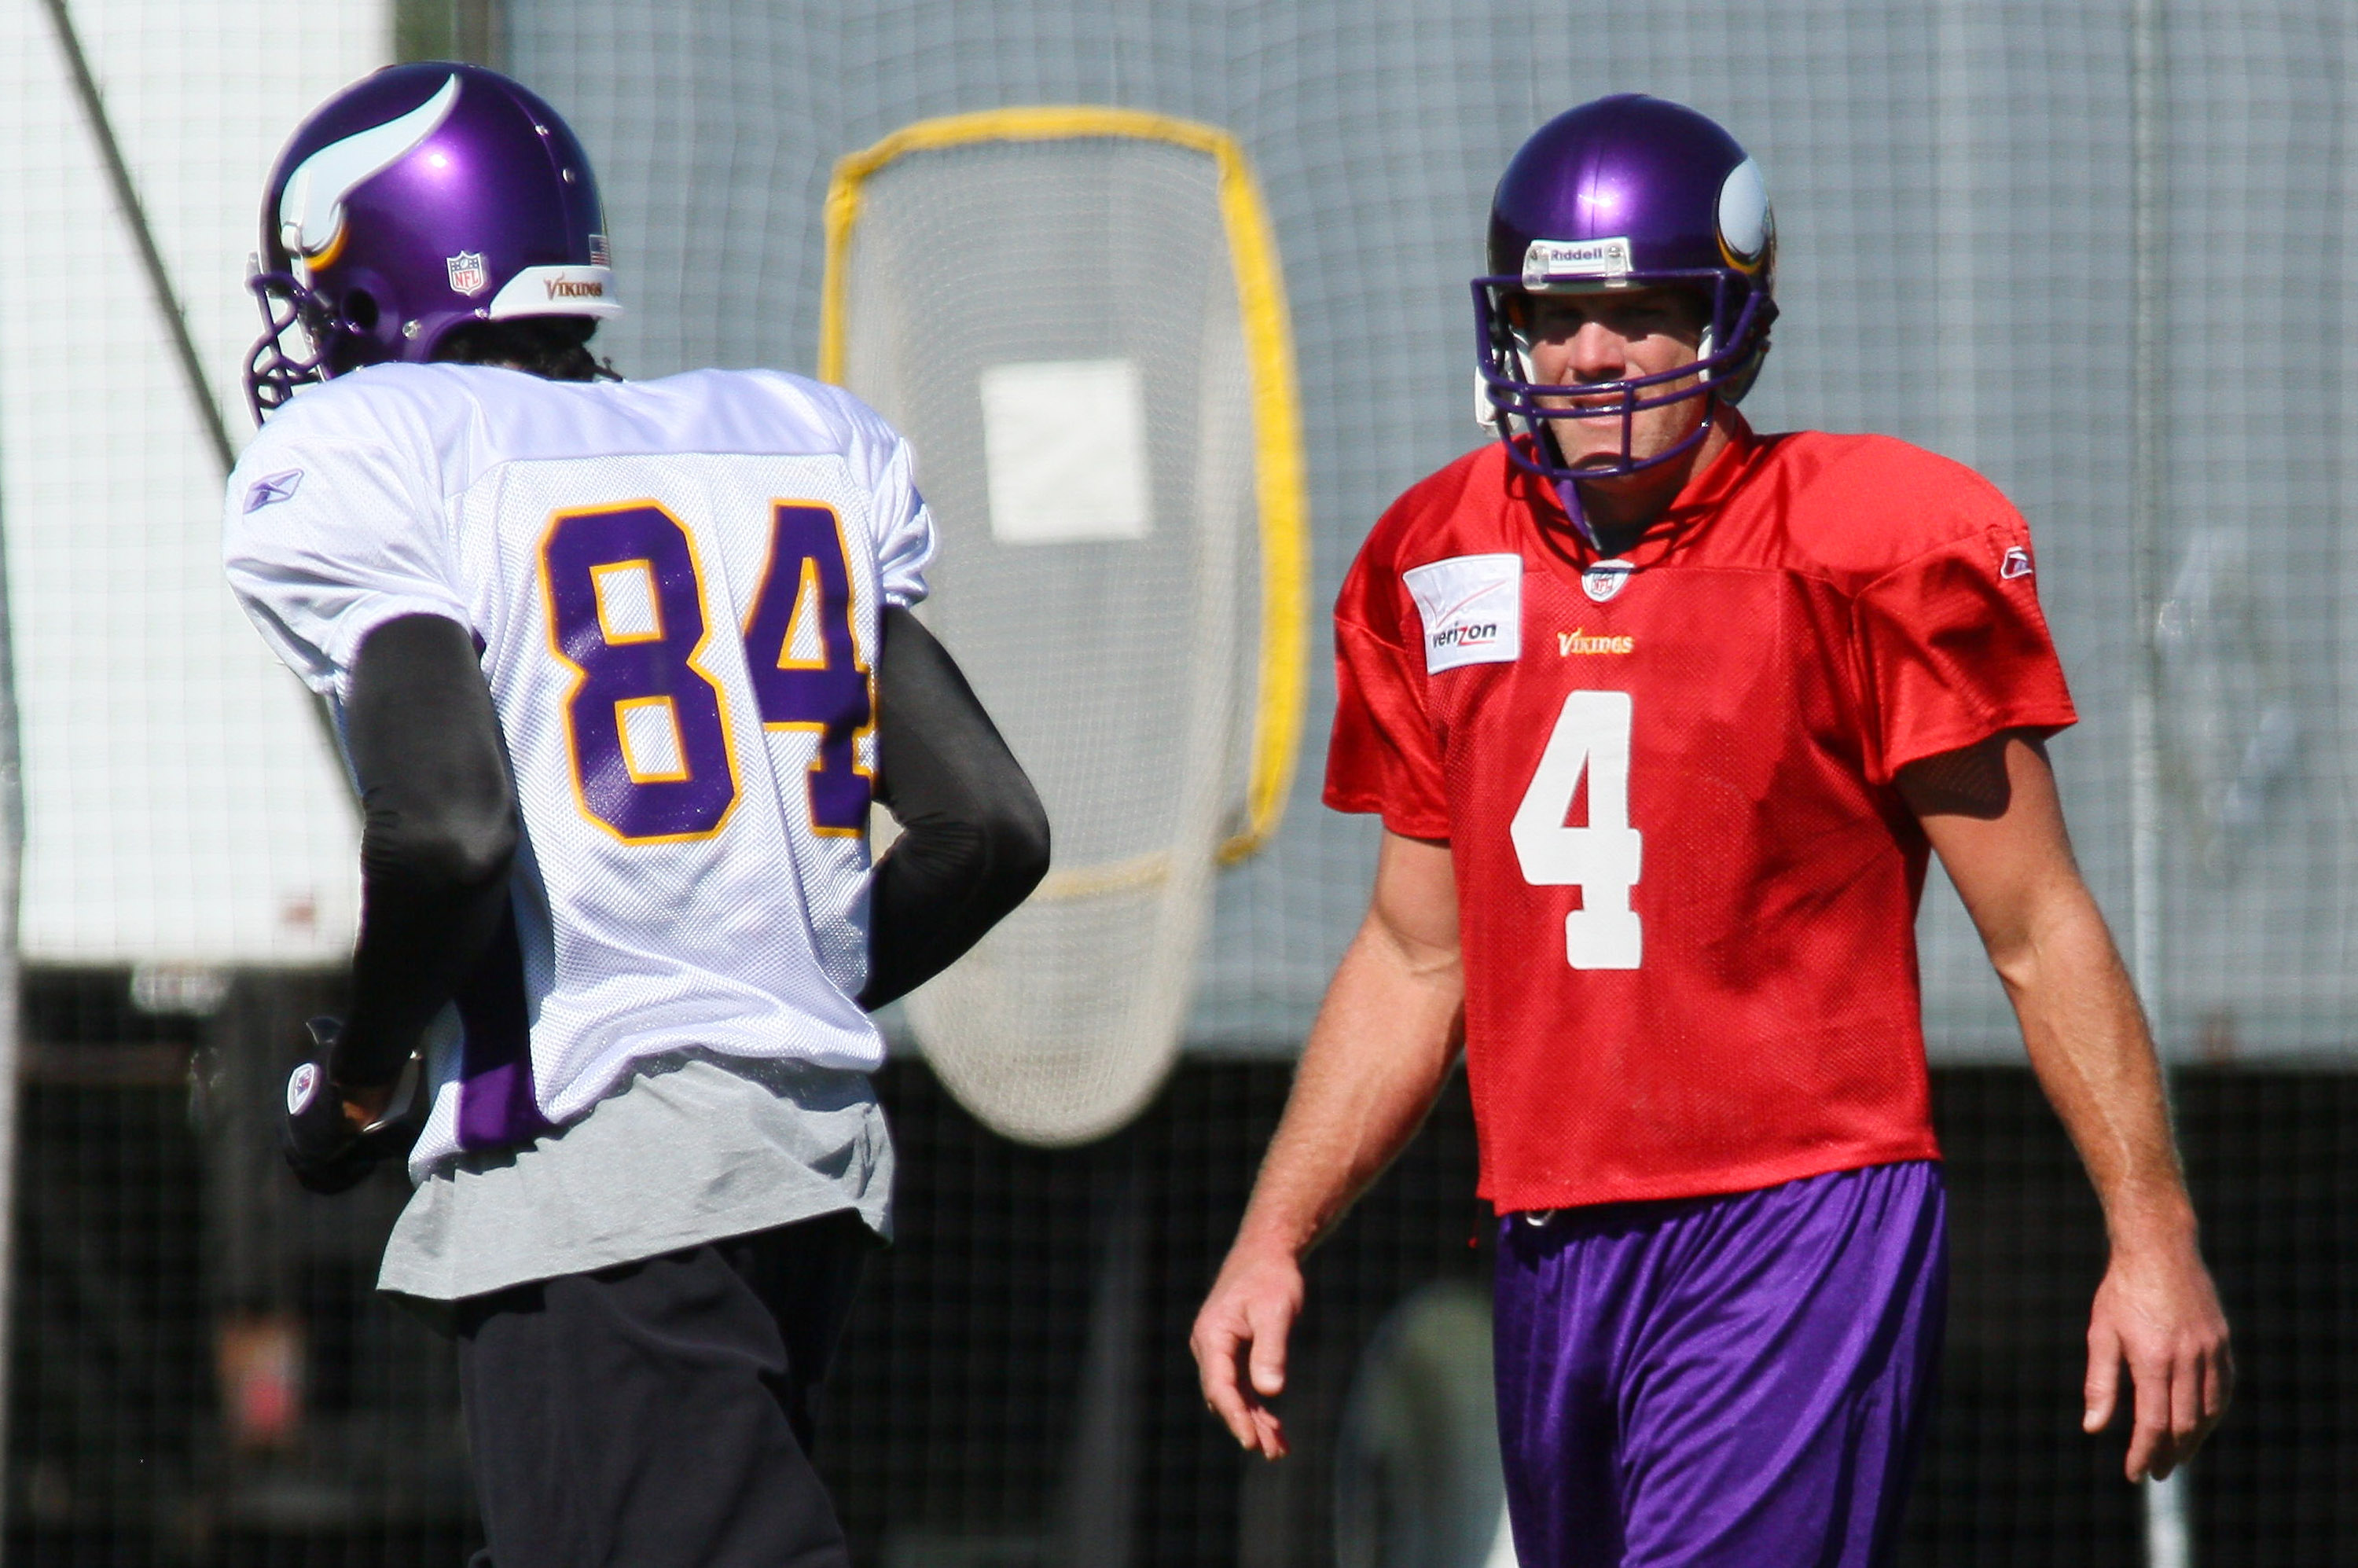 EDEN PRAIRIE, MN - OCTOBER 7:  Wide receiver Randy Moss #84 of the Minnesota Vikings runs past quarterback Brett Favre #4 while taking his first practice after re-joining the Vikings at Winter Park on October 7, 2010 in Eden Prairie, Minnesota.  (Photo by